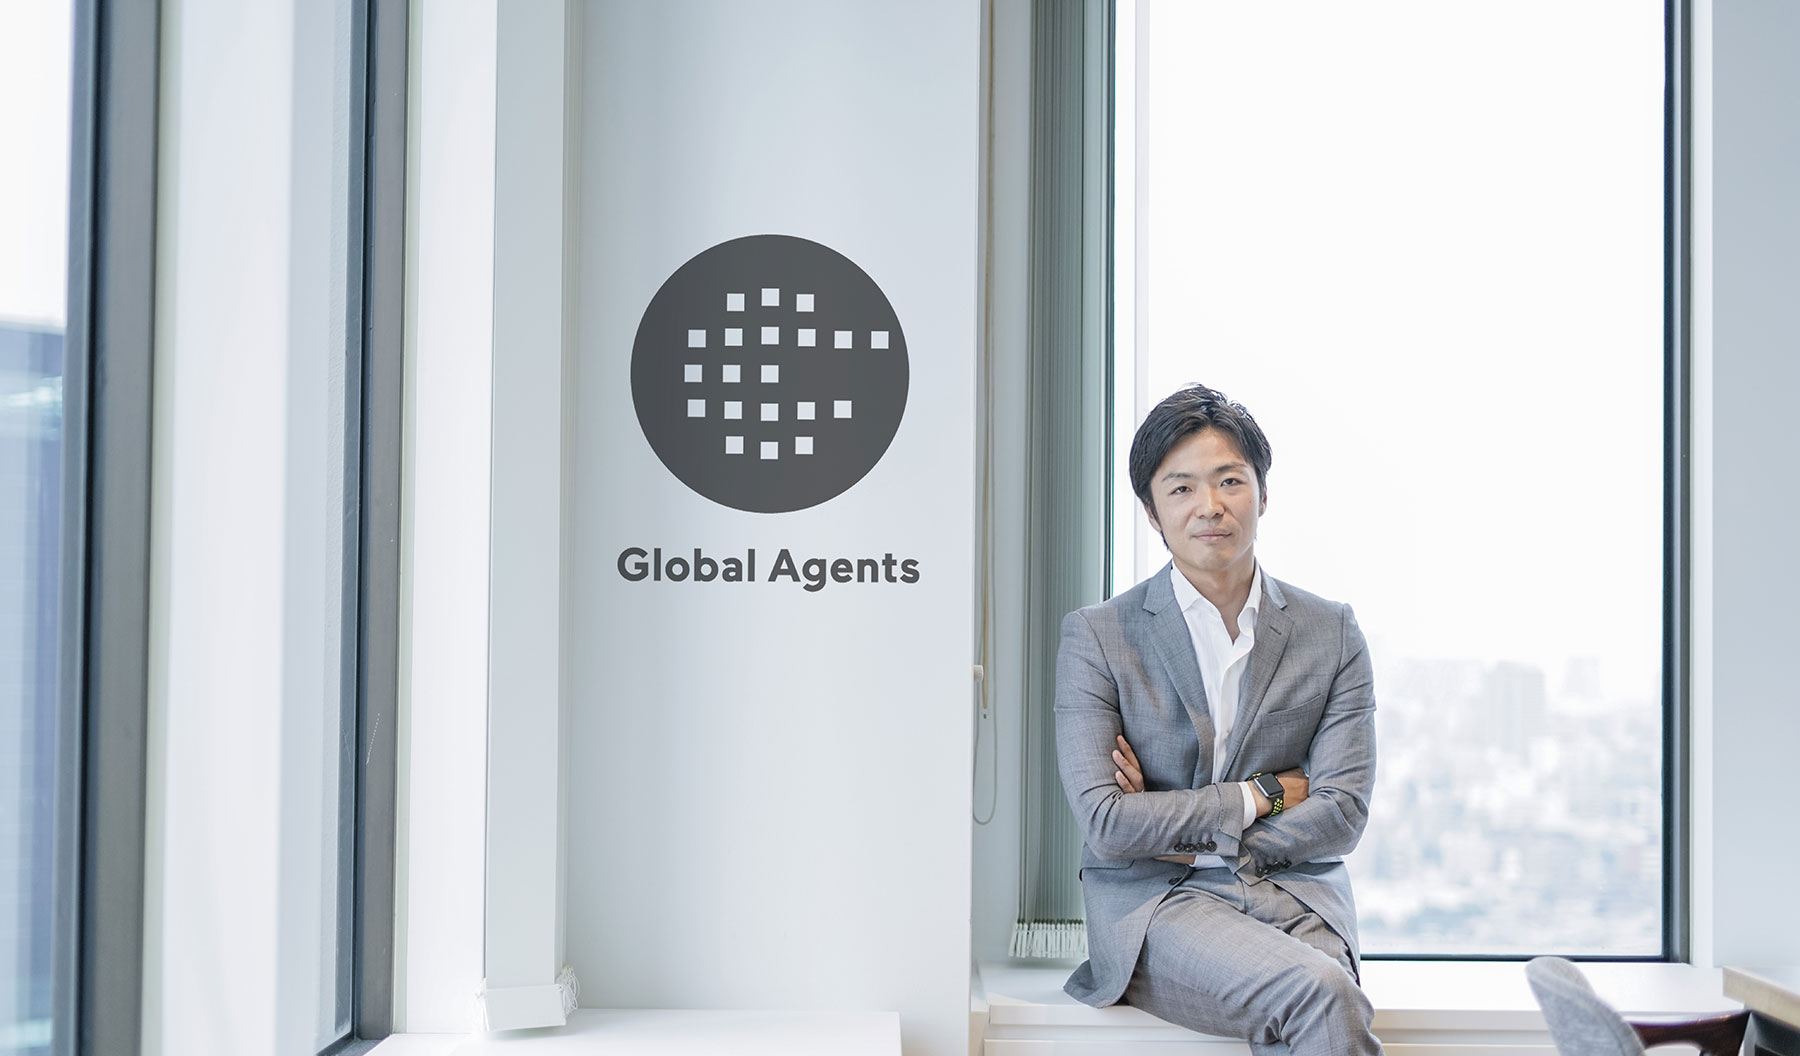 Takeshi Yamasaki. Founder and CEO of Global Agents Co